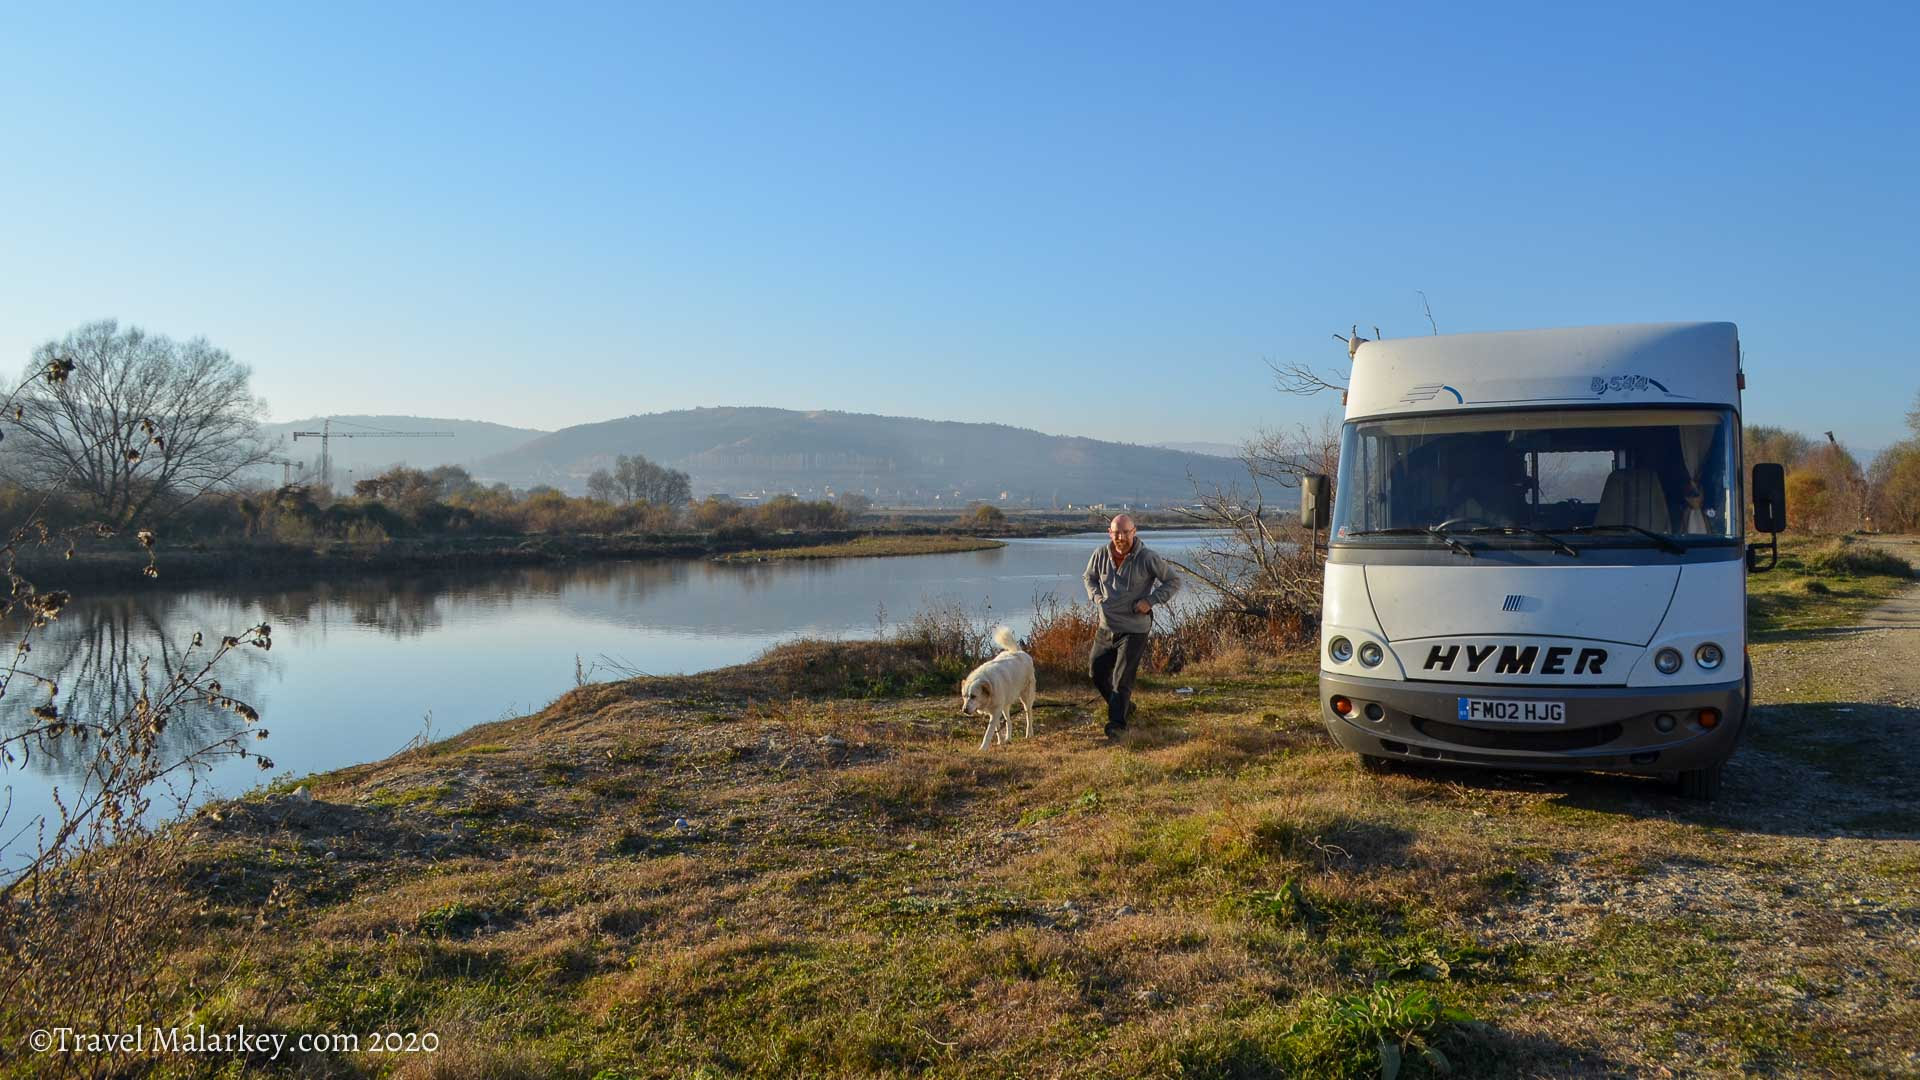 On a Hymer Adventure in Bulgaria